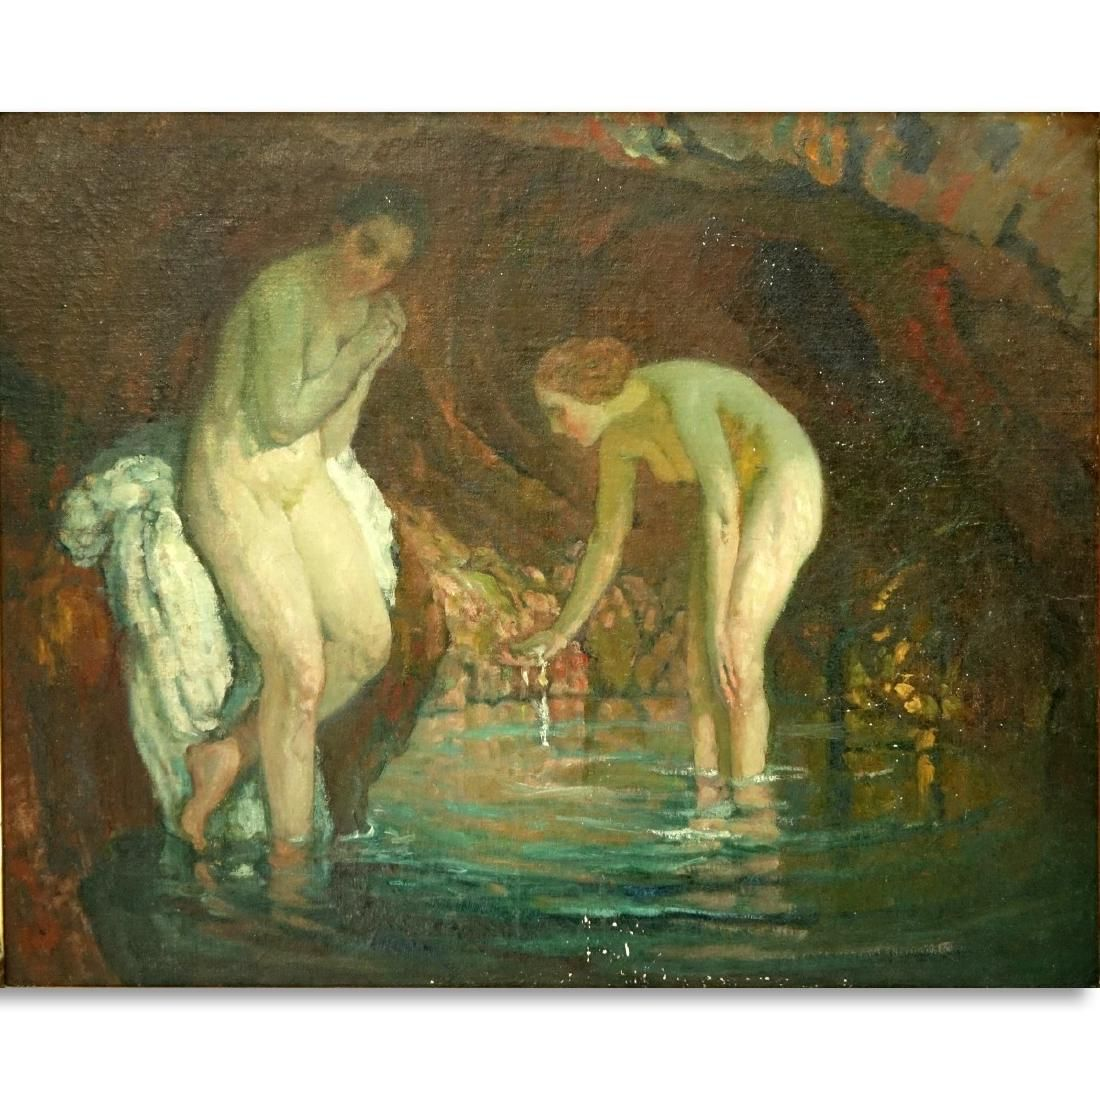 French Pre Raphaelite style O/C, Nudes in Grotto